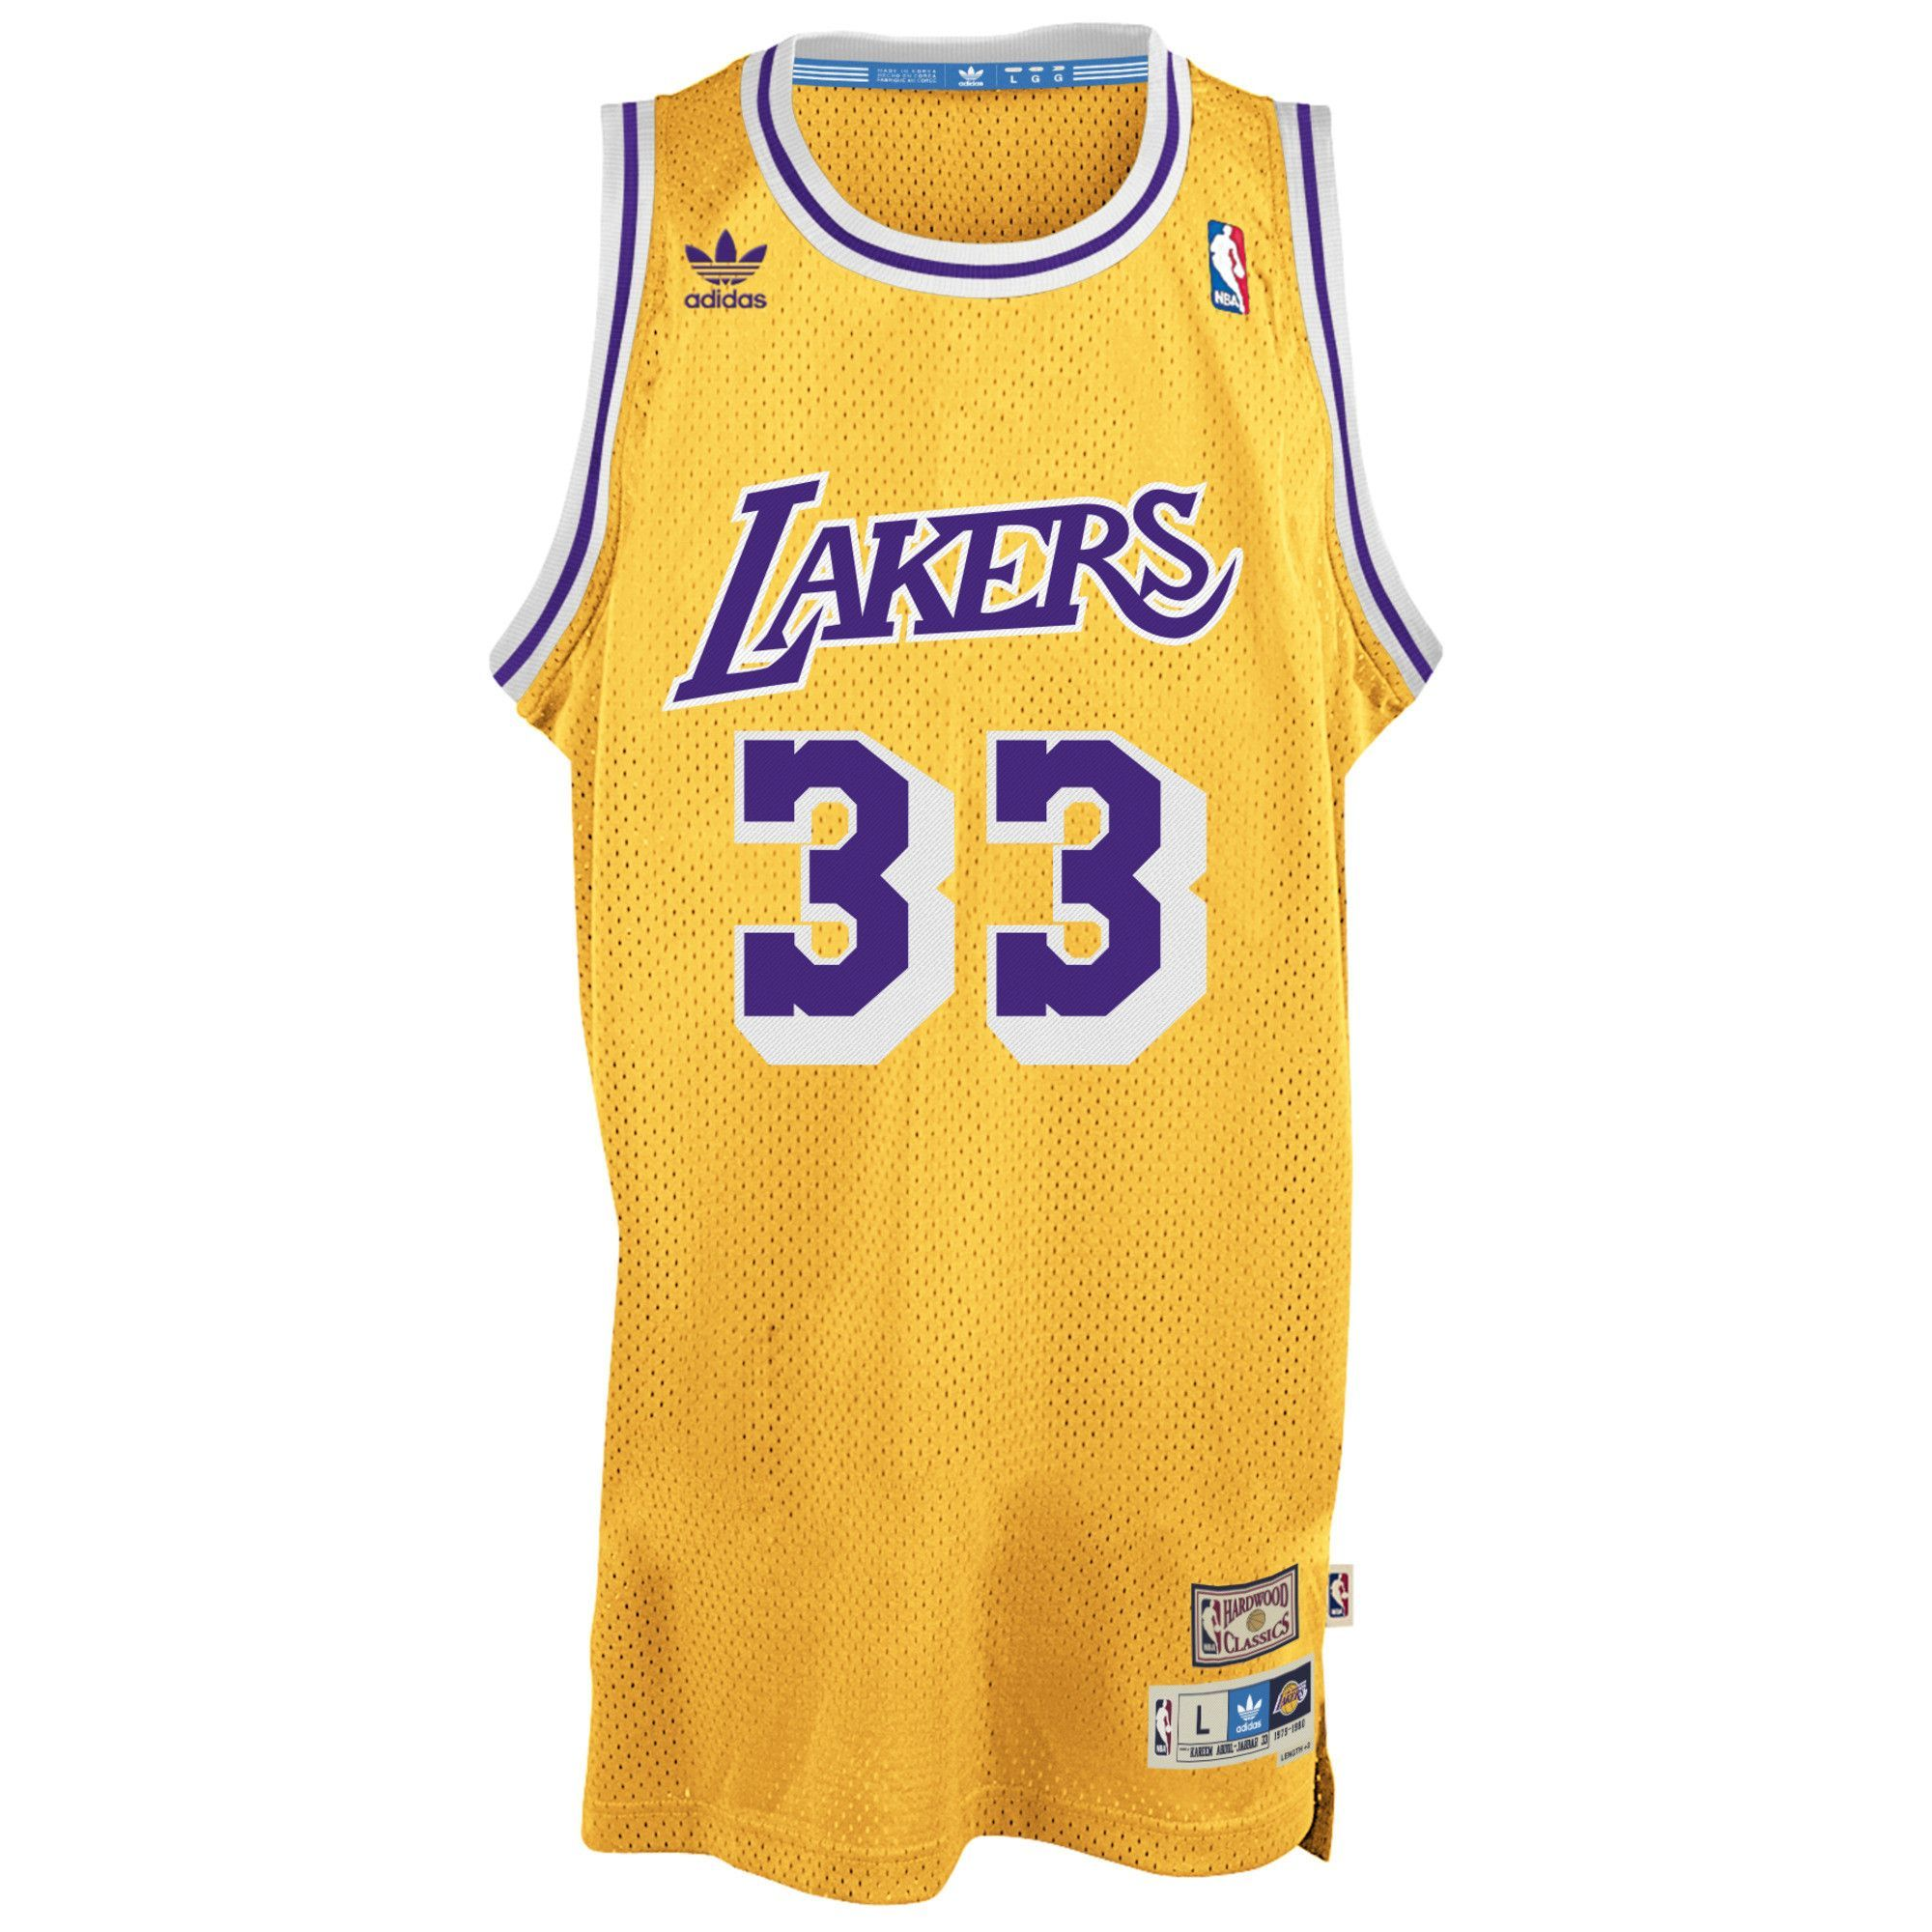 dd93df4ecc52 Men s Kareem Abdul-Jabbar Los Angeles Lakers Gold Hardwood Classic Swingman  Jersey by adidas. Pro Image Sports at Mall of America.